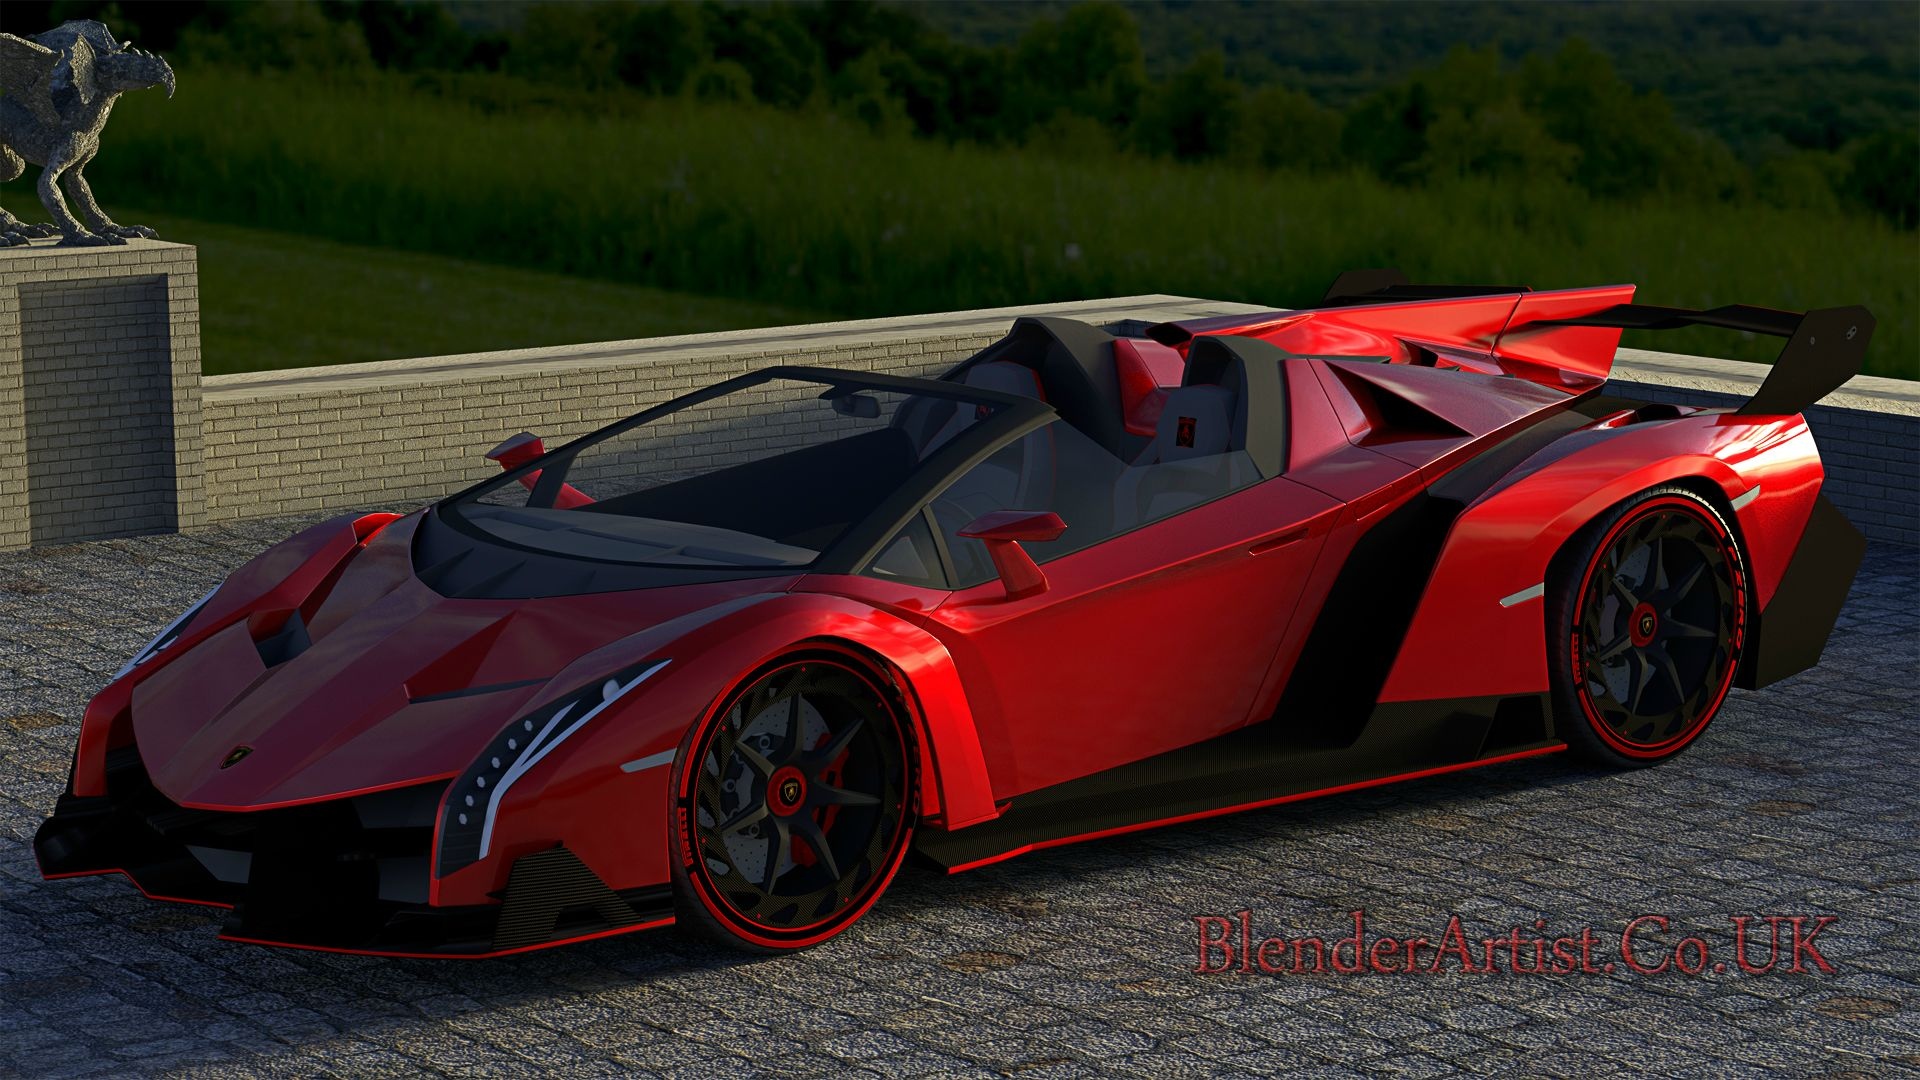 Most expensive supercar made. Starting at $4.5 million. © BlenderArtist.Co.Uk 2014.